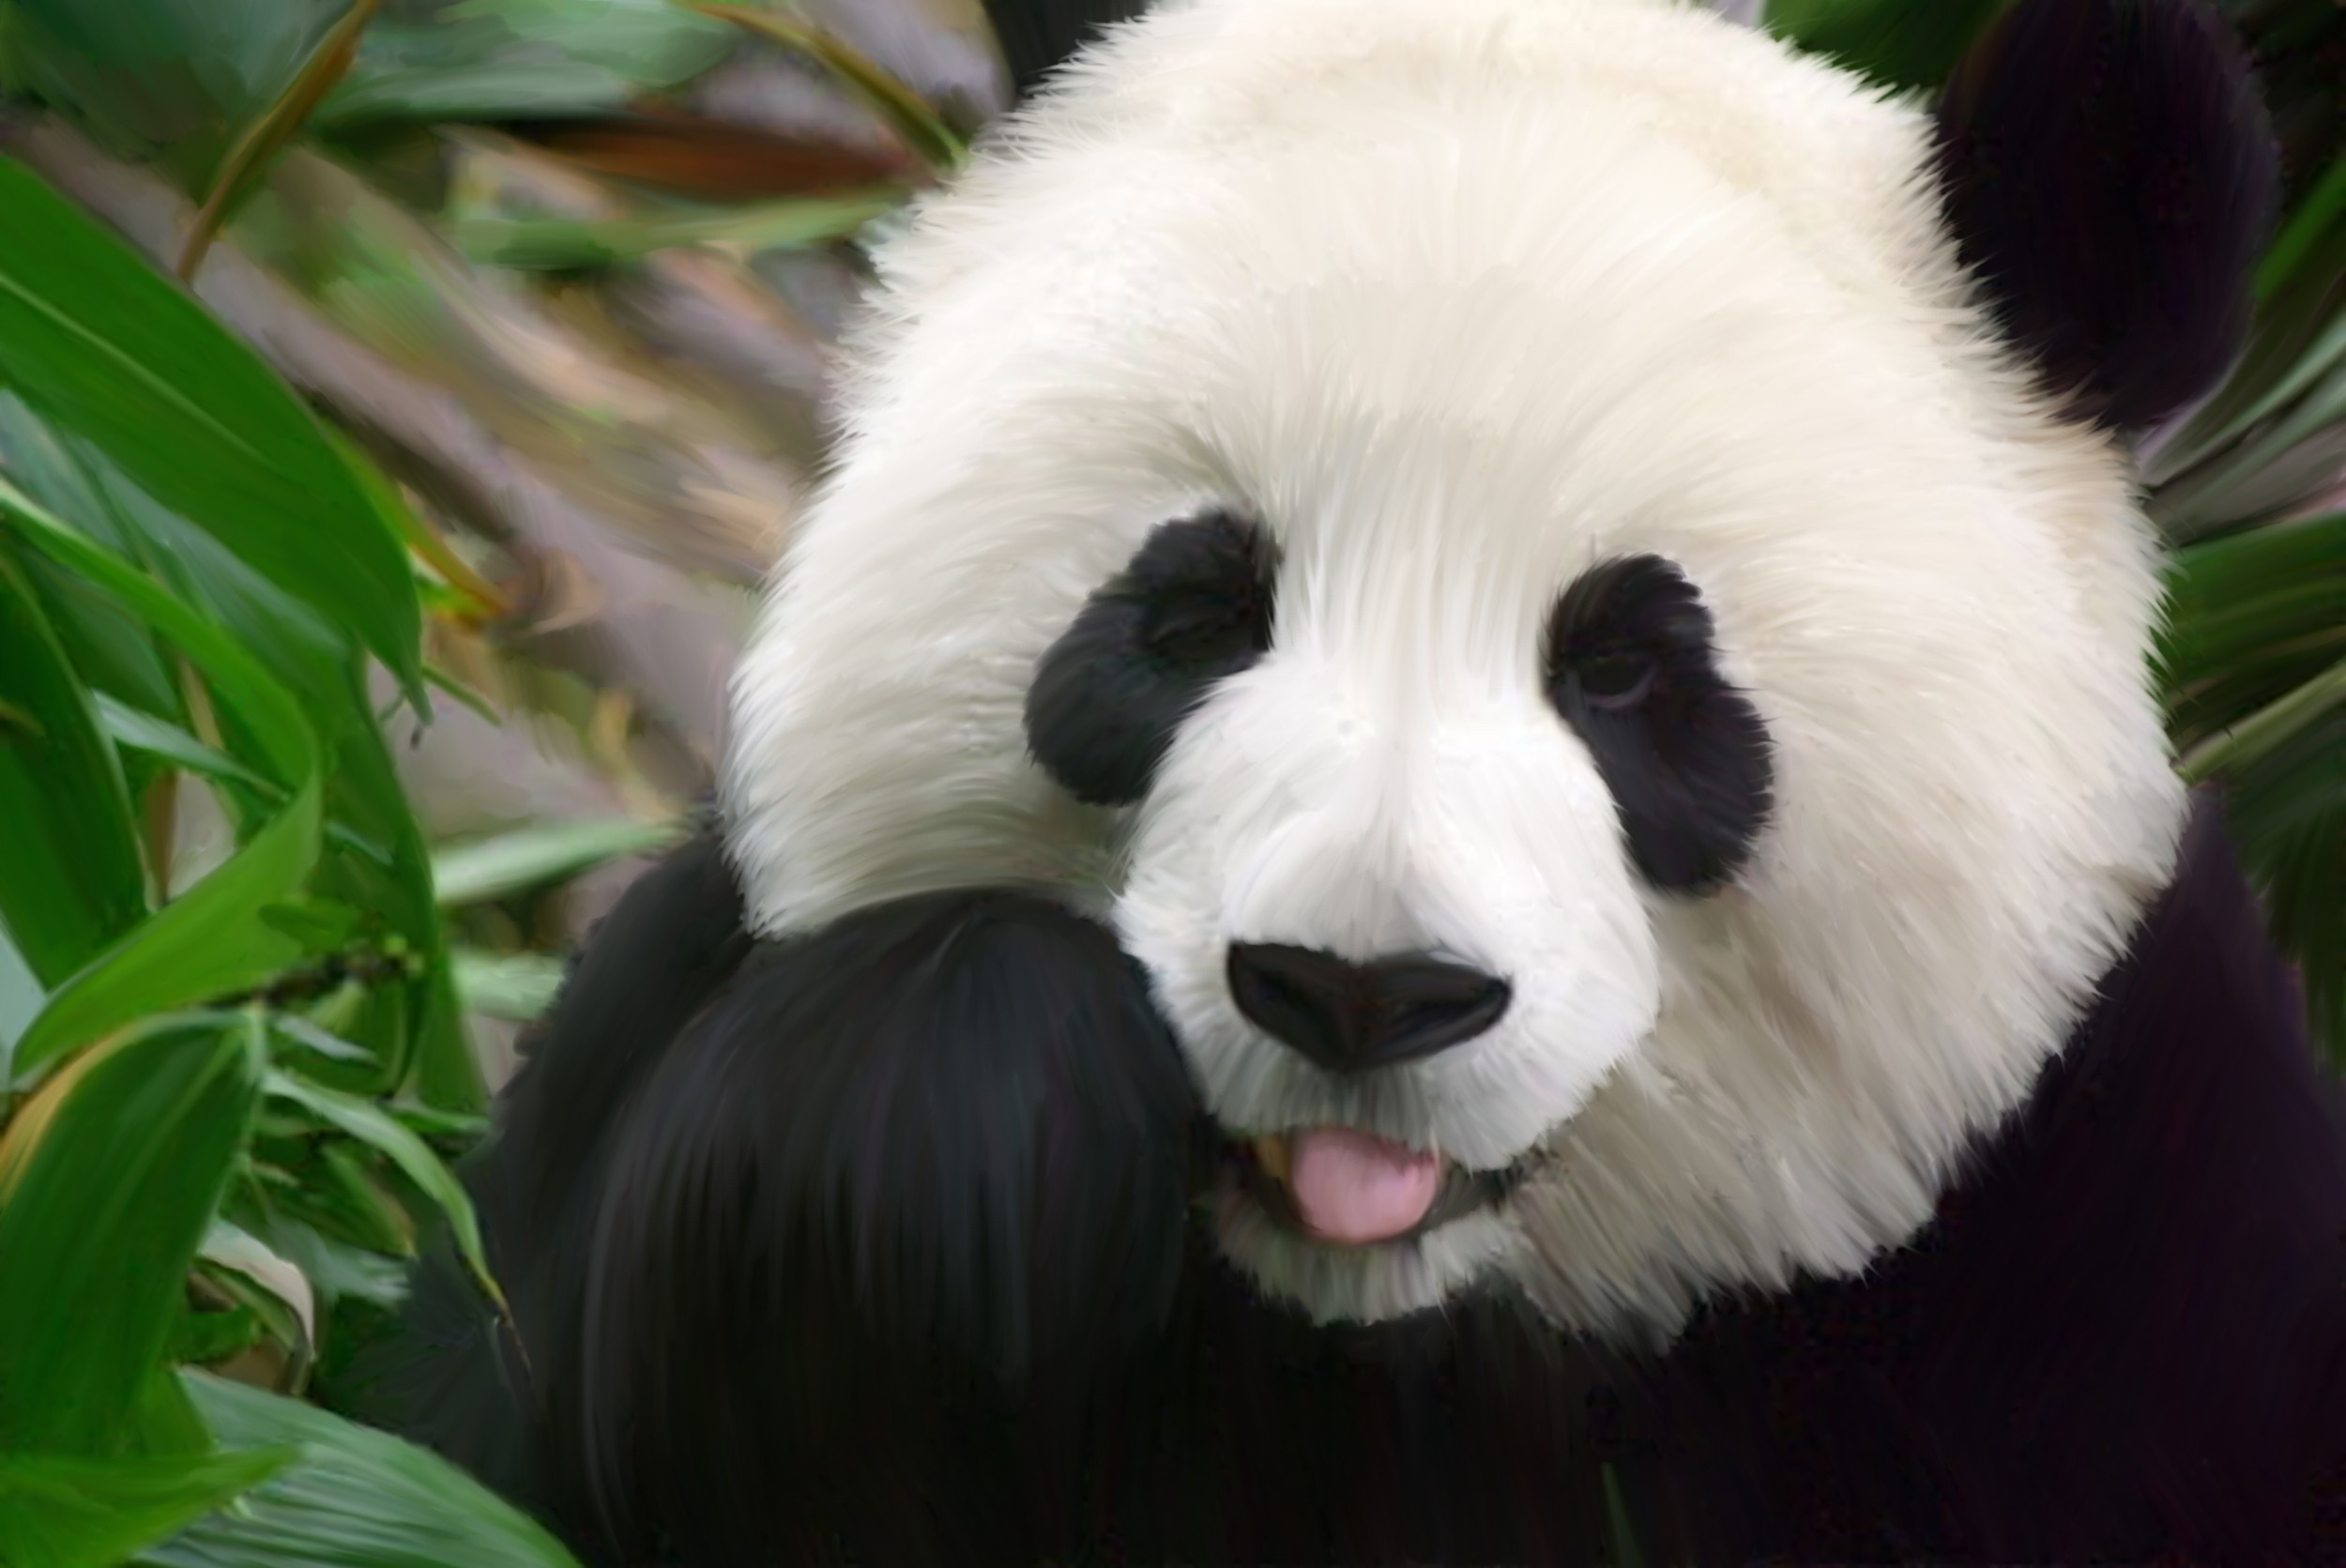 Panda Background 1 Download Free Stunning Full HD Wallpapers For